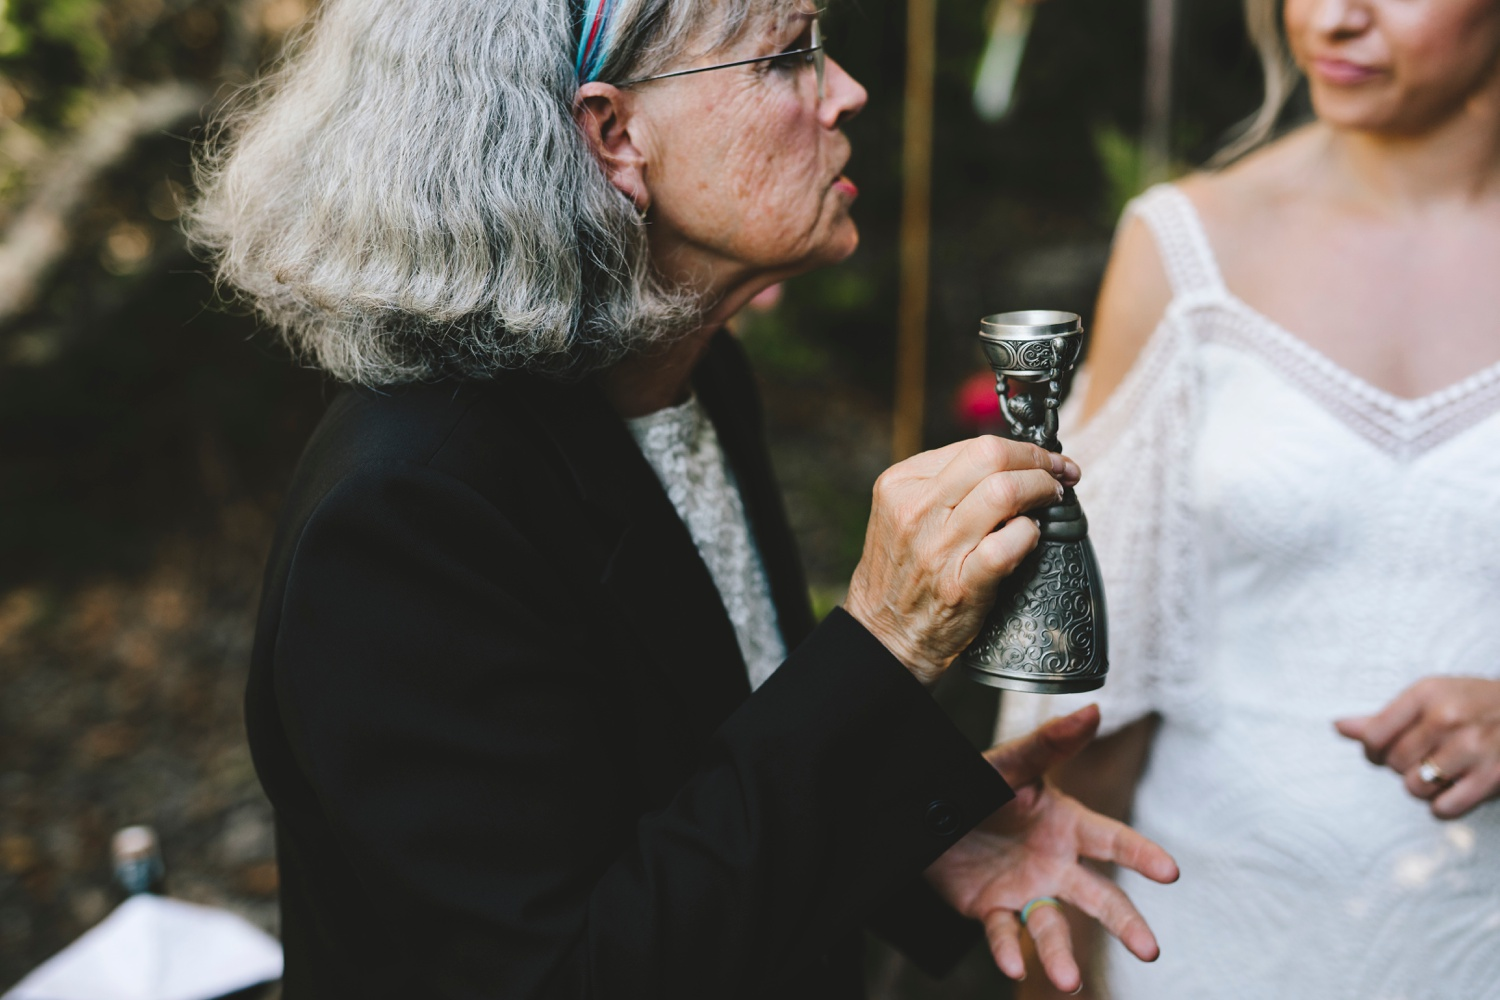 charlie_ray_photography_runaway_romance_elopement_emily_moon_plett_simple_boho_wedding_south_africa_bohemium_0055.jpg